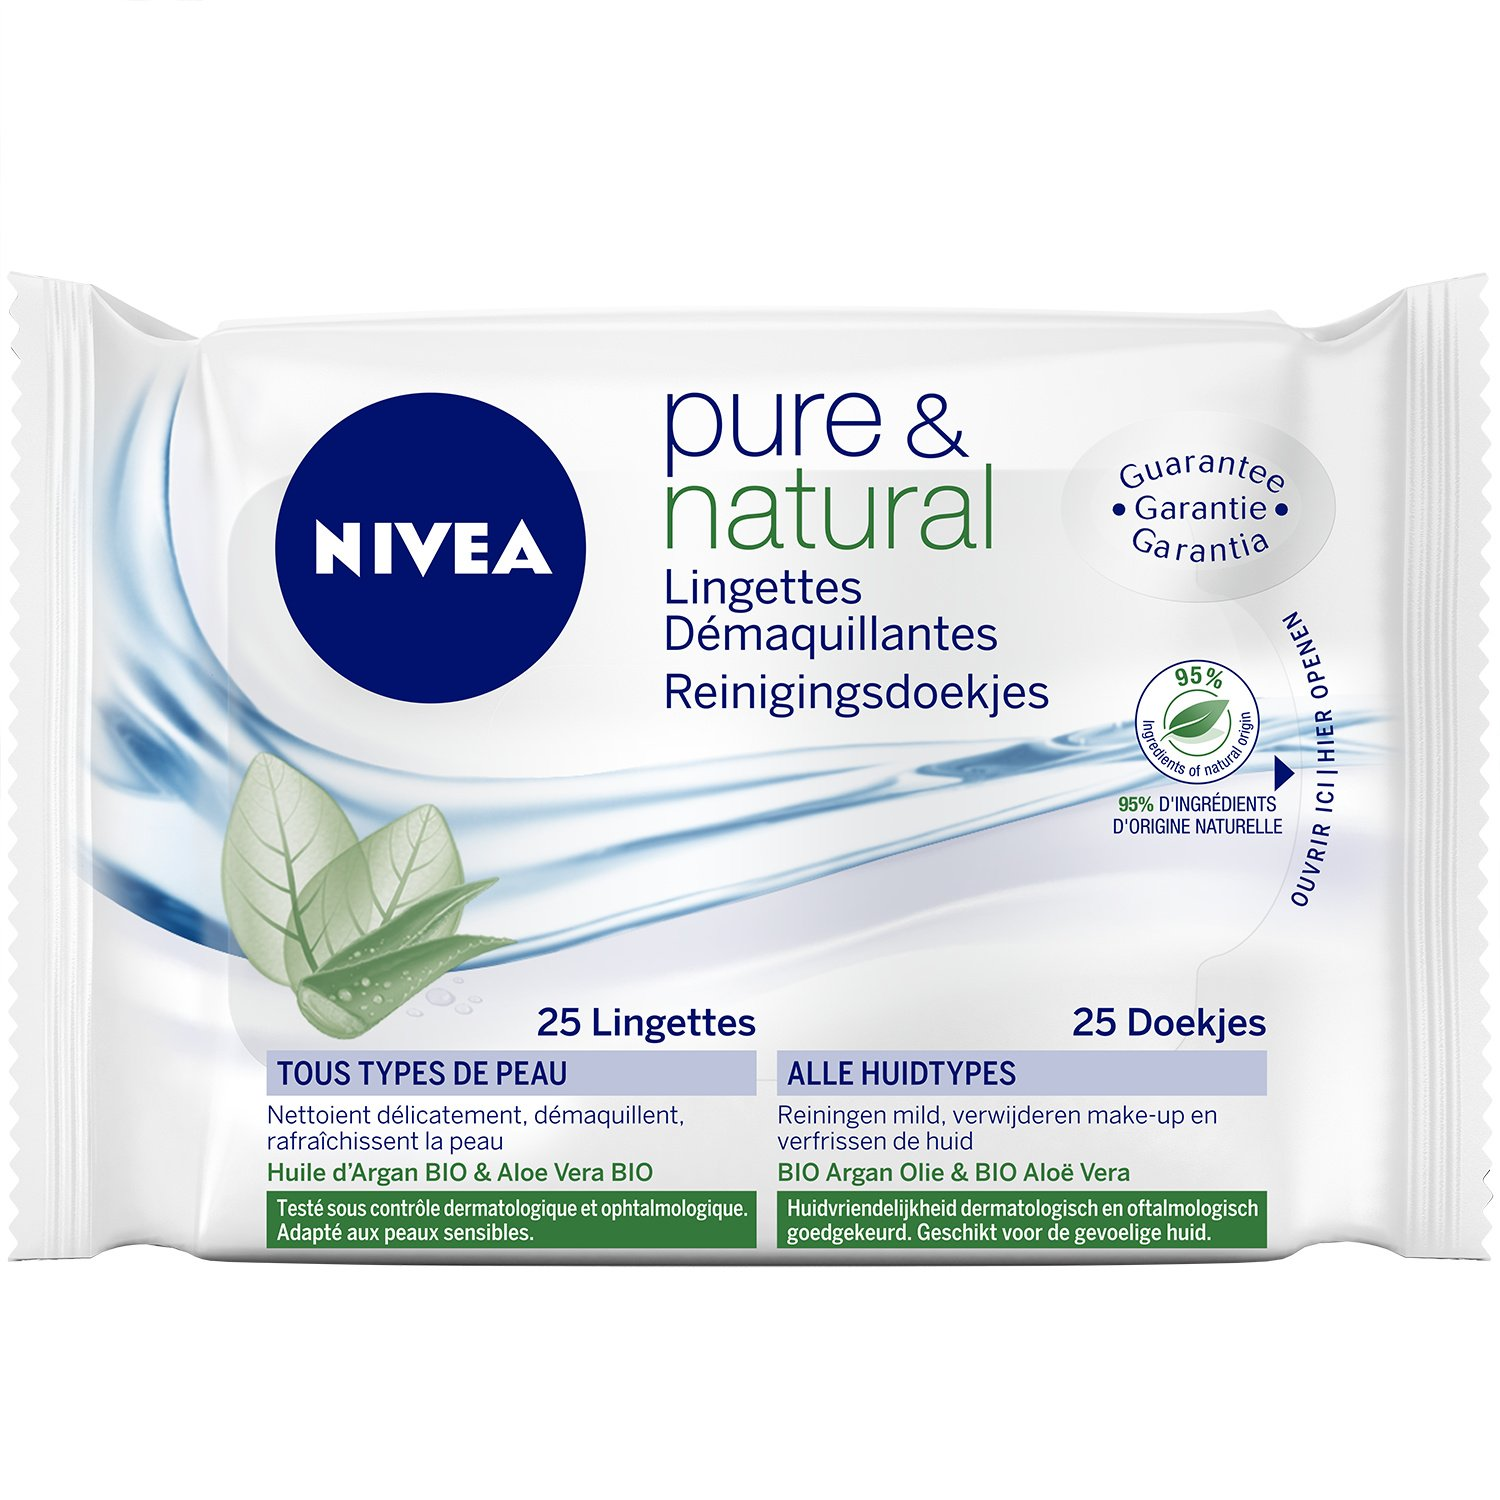 Nivea Pure et Natural Lingettes Démaquillantes Biodégradables x 25 - Lot de 2 Nivea Visage